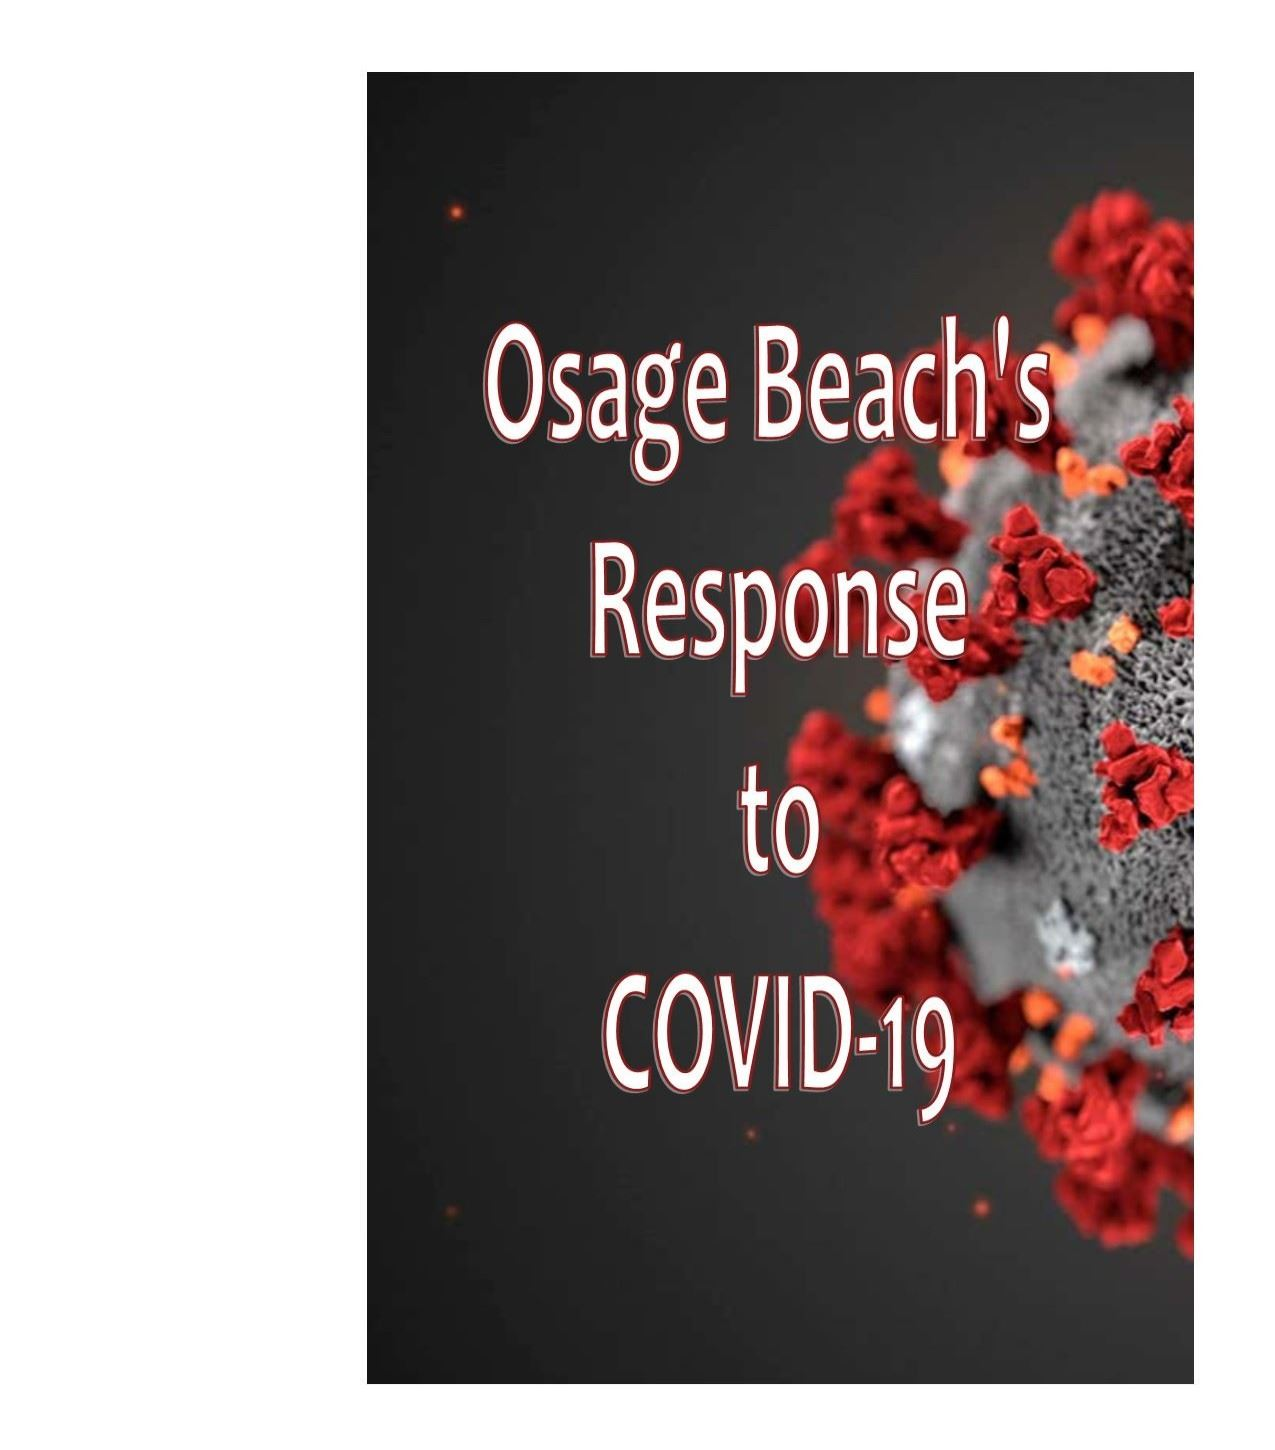 Osage Beach's Response to COVID-19